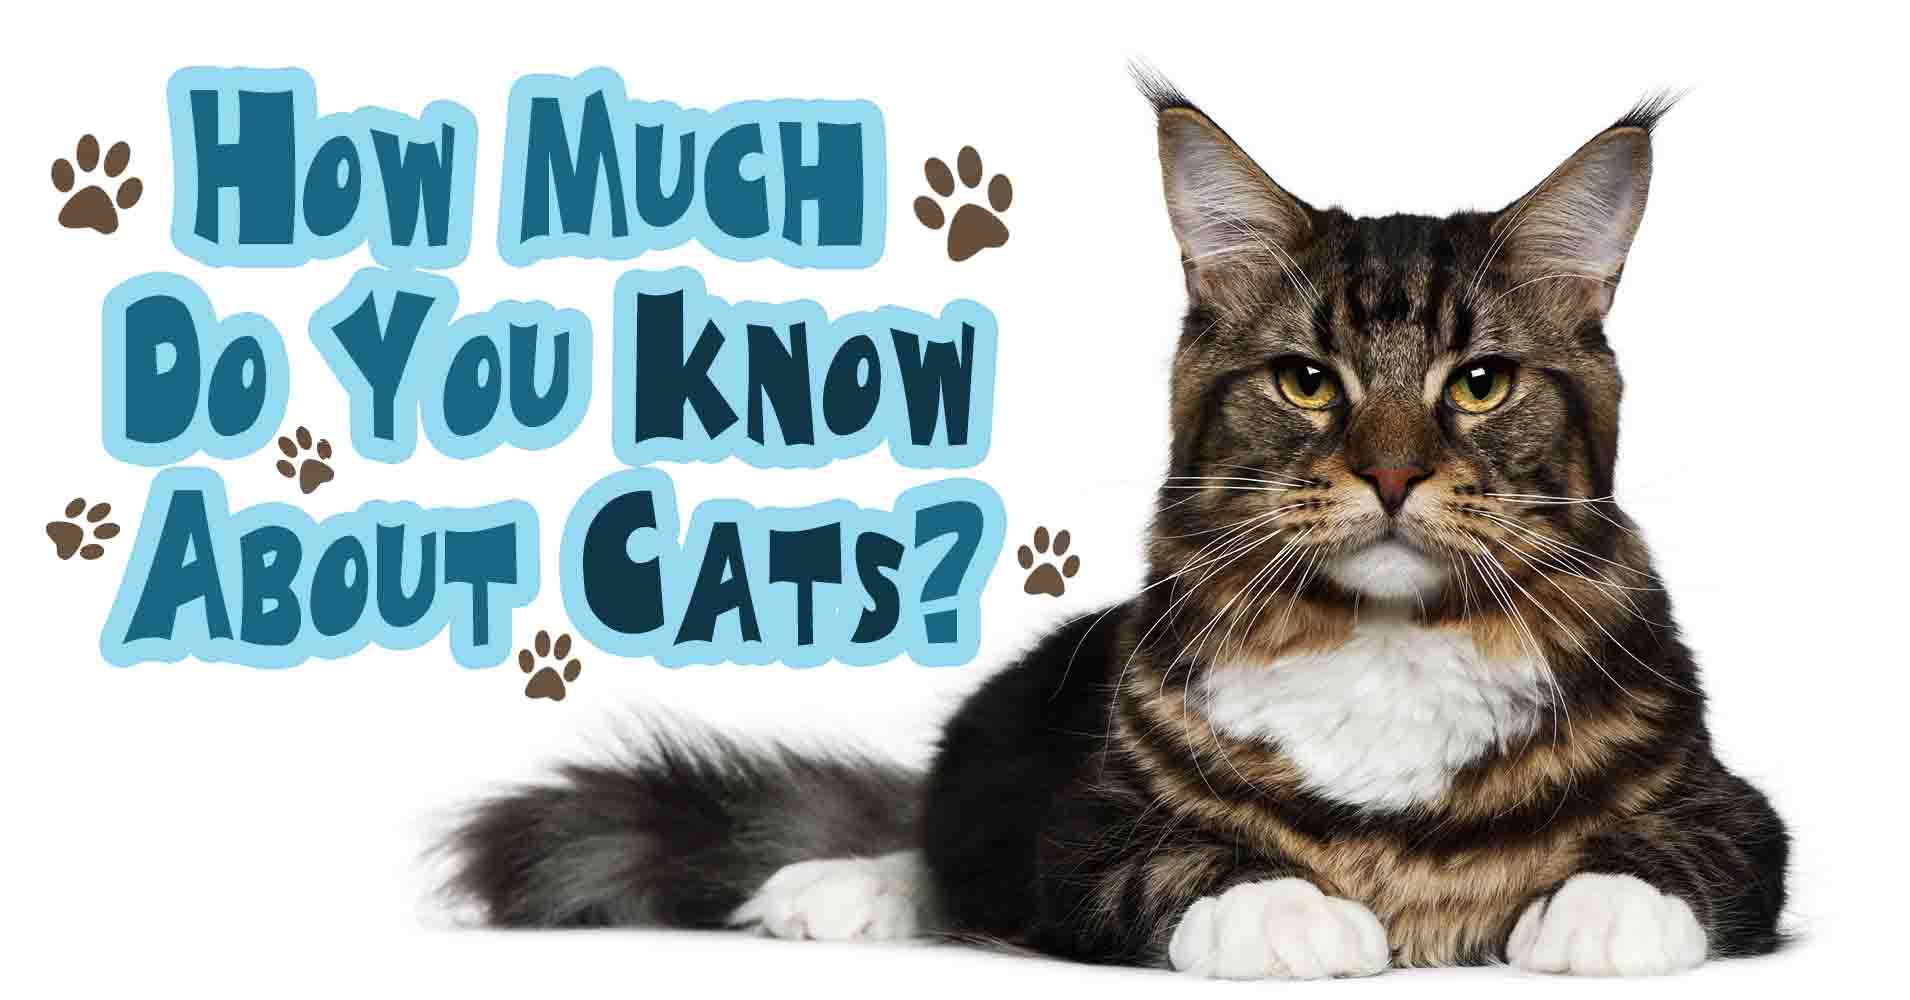 How much do you really know about cats